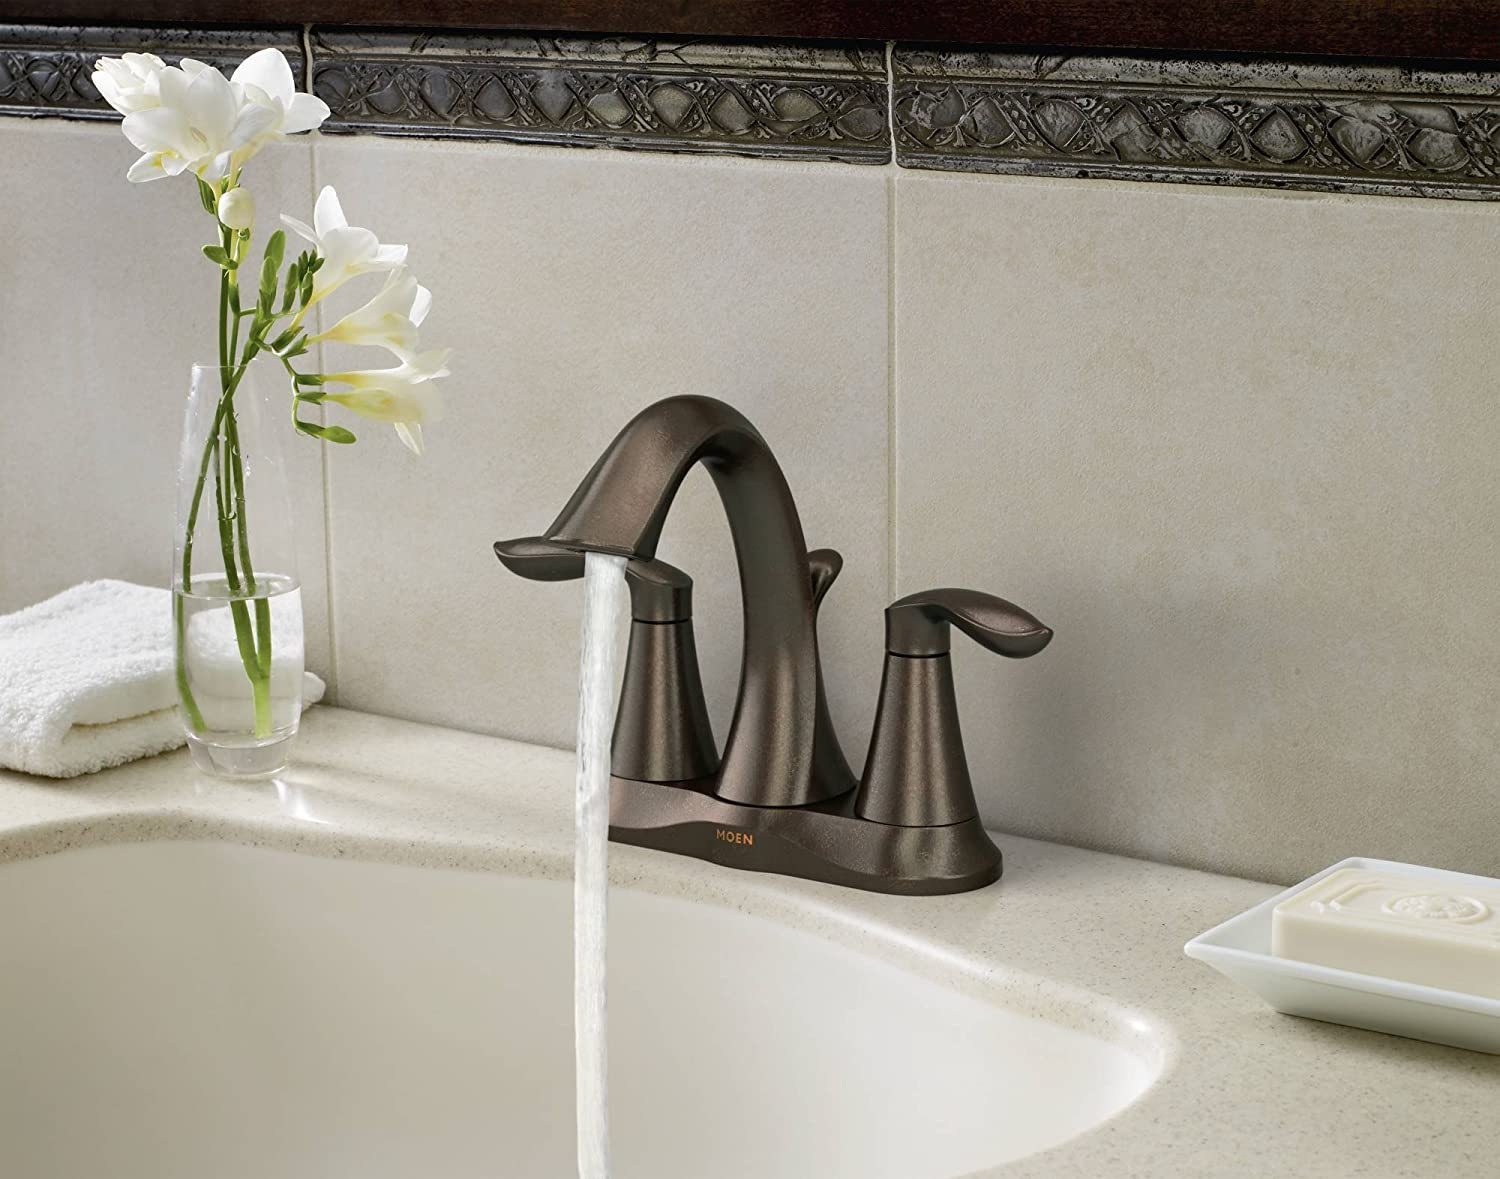 Moen 6410ORB Eva Two Handle Centerset Lavatory Faucet With Drain Assembly, Oil Rubbed  Bronze   Touch On Bathroom Sink Faucets   Amazon.com